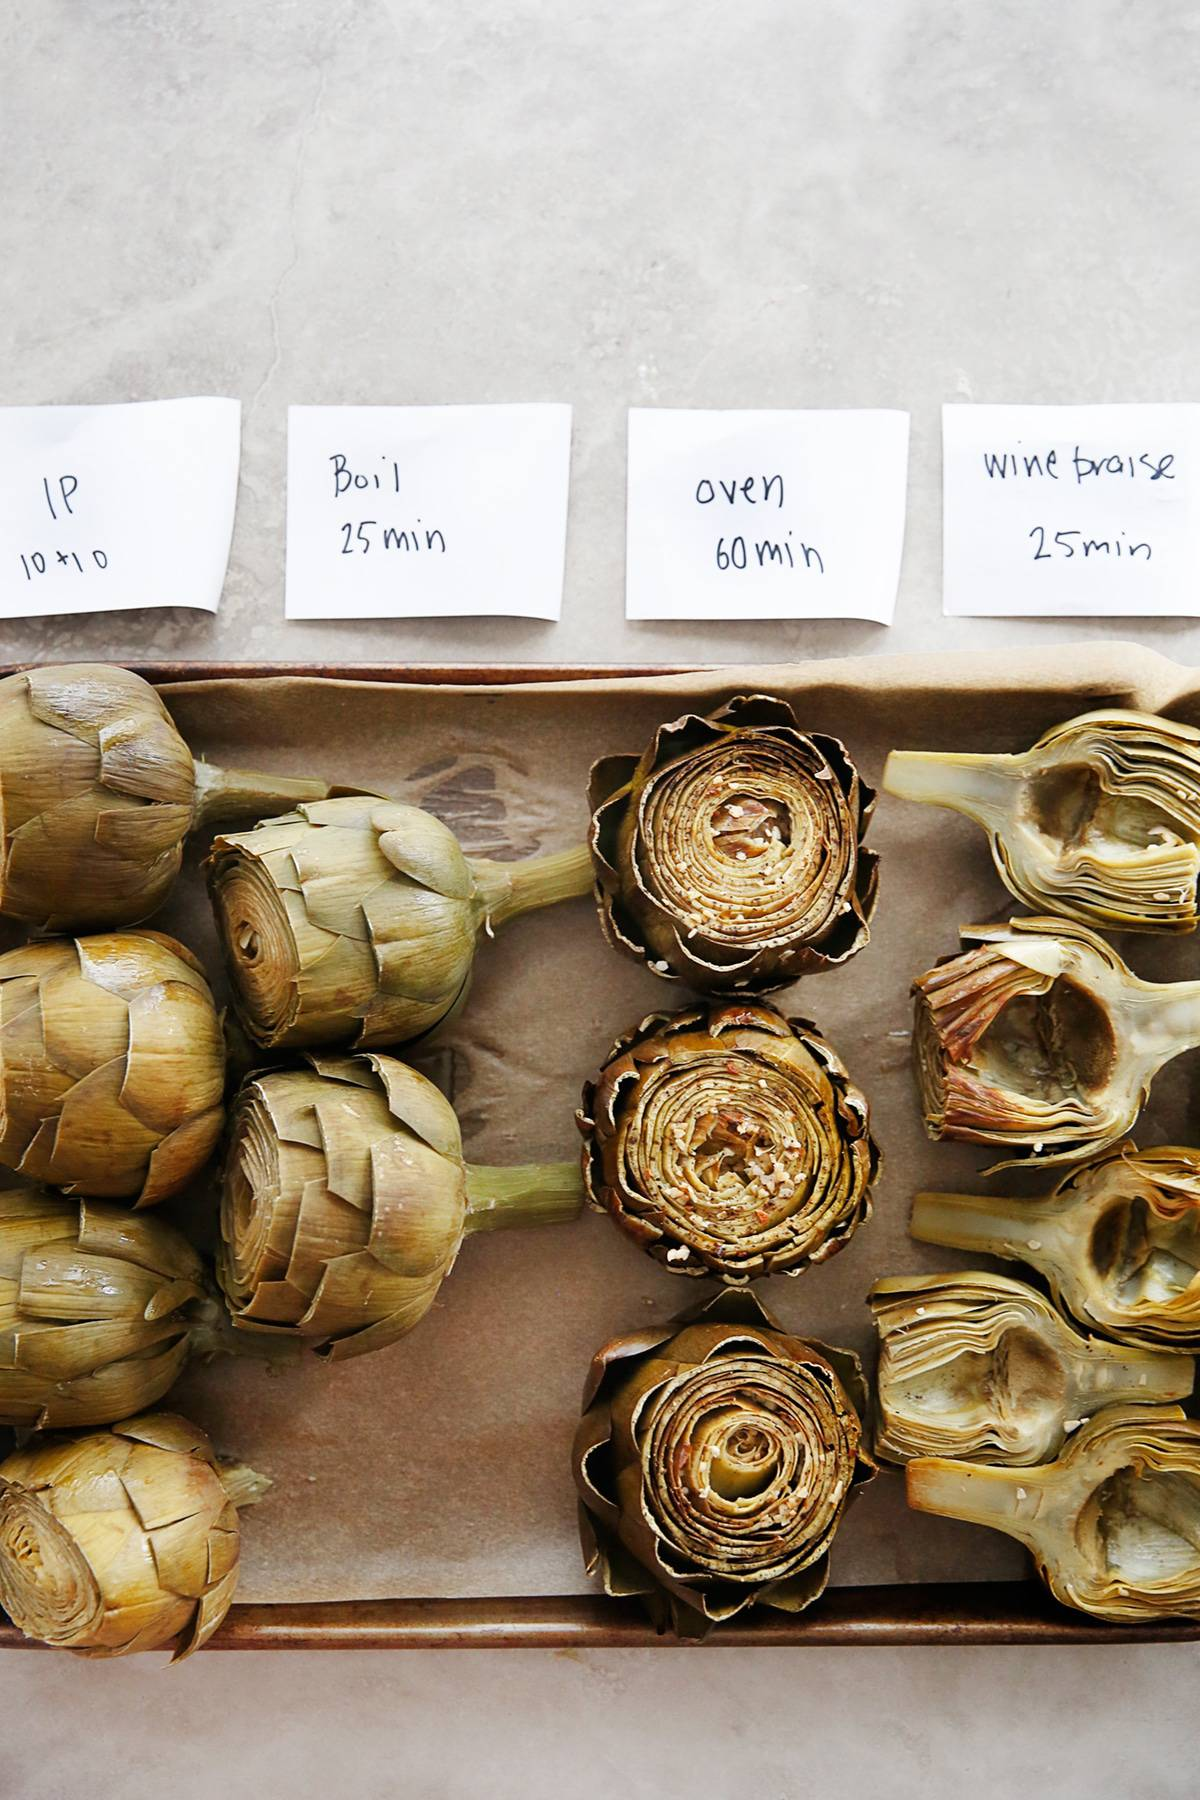 Artichoke Guide: Grill, Instant Pot/Steam, Braise, or Roast